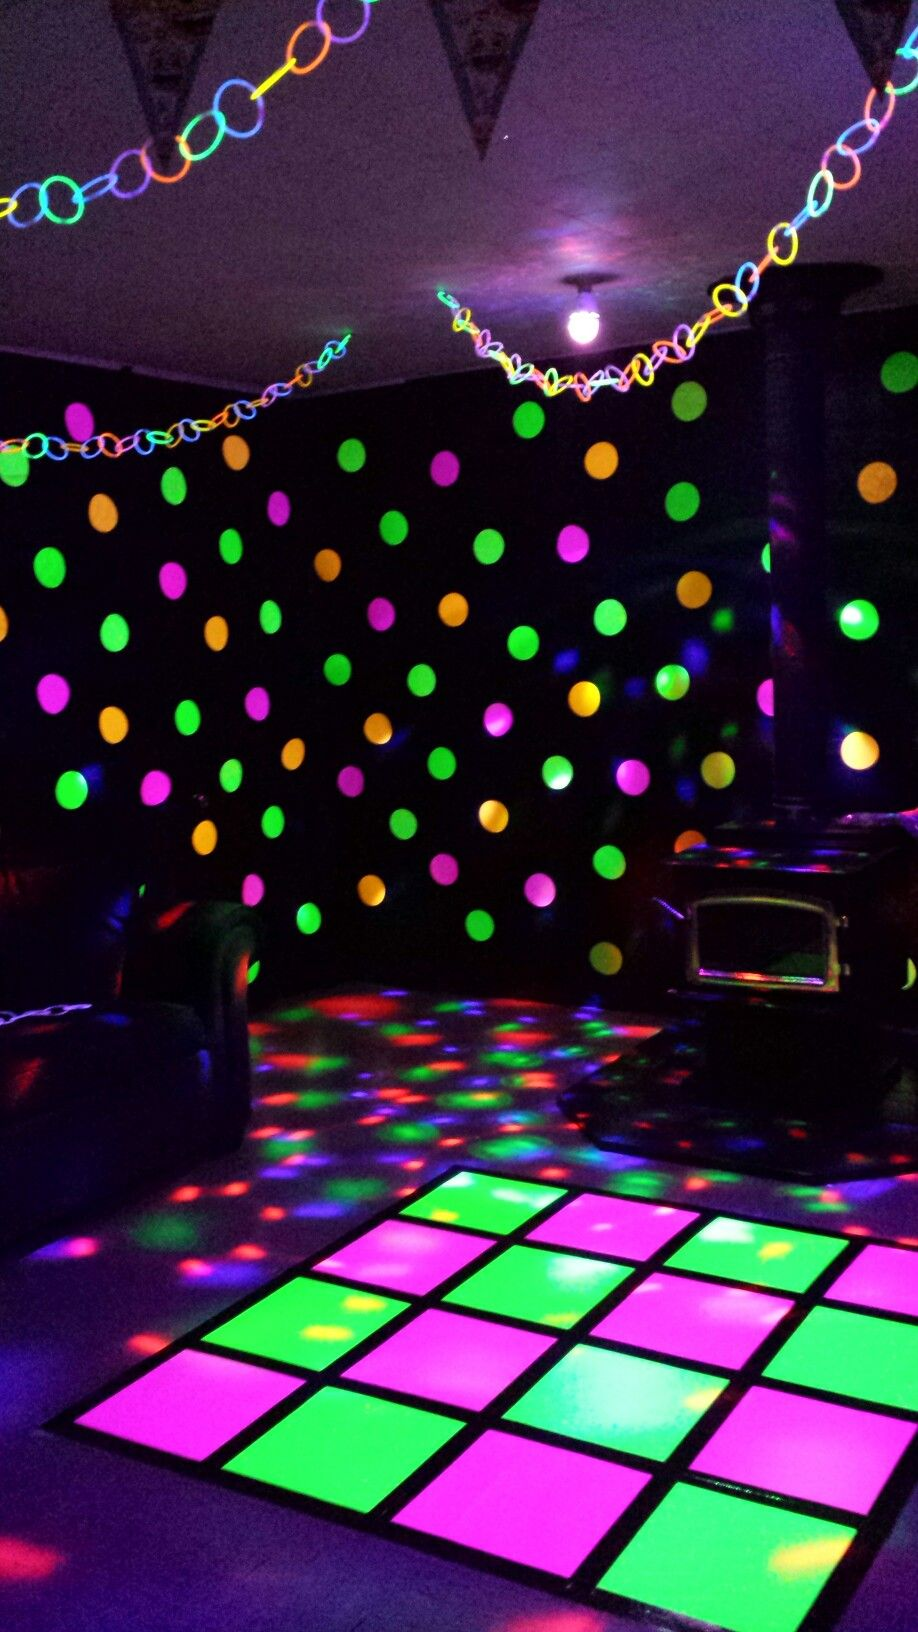 Neon Dance Party I Covered The Walls In Black Tablecloth And Used Neon Poster Board For The Circles And Dan Glow Birthday Party Neon Dance Party Glow Birthday